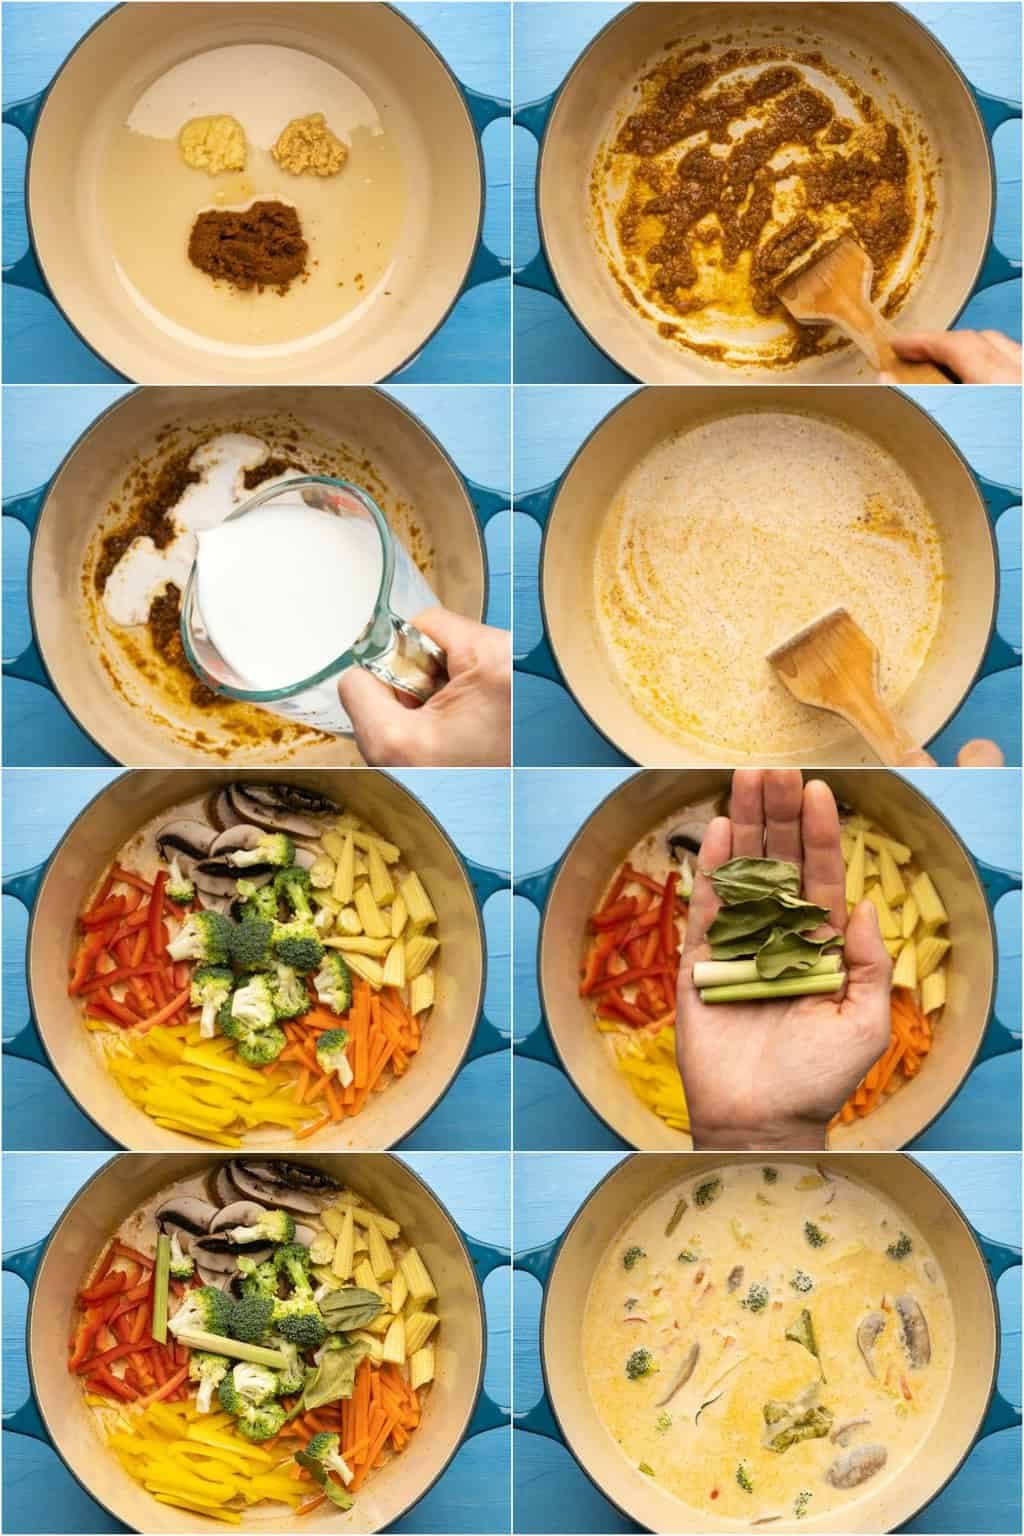 Step by step process photo collage of making a thai red curry.